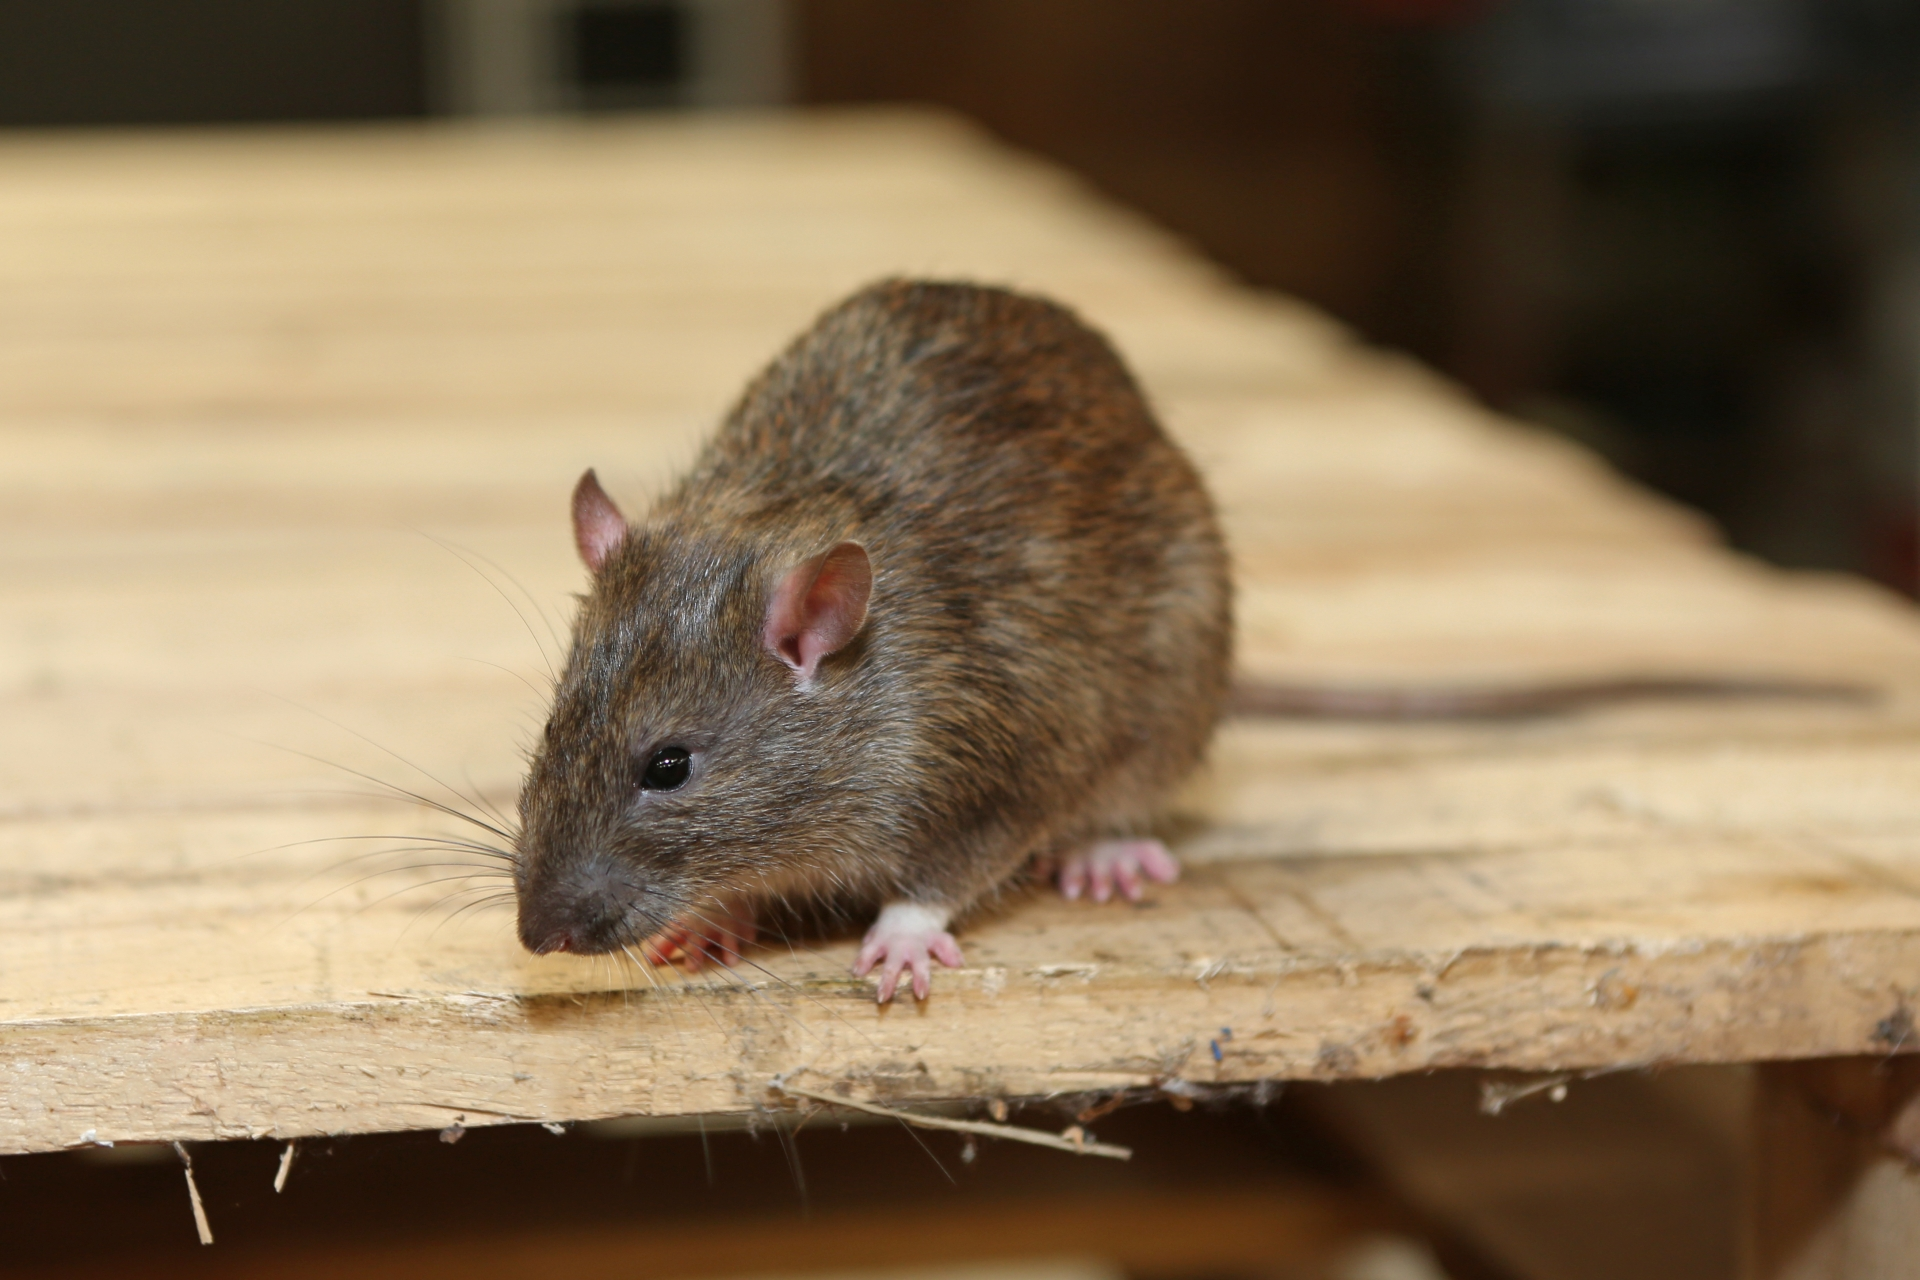 Rat Control, Pest Control in Tottenham, N17. Call Now 020 8166 9746